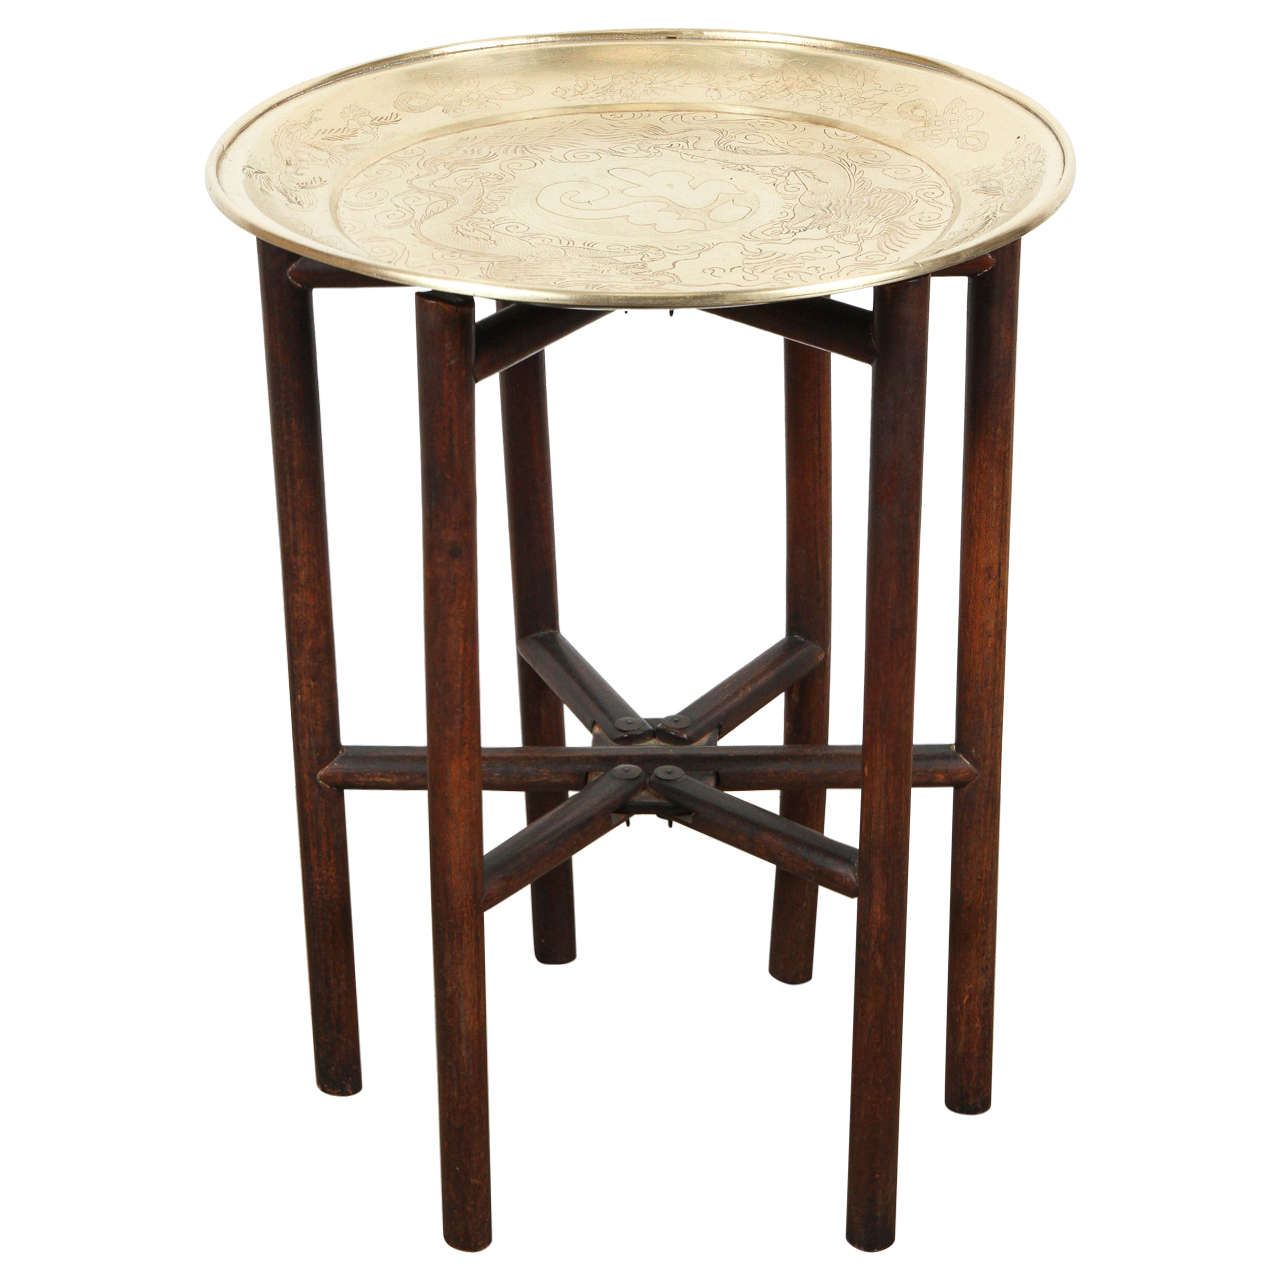 Brass Tray Side Table On Folding Stand For Sale At 1stdibs